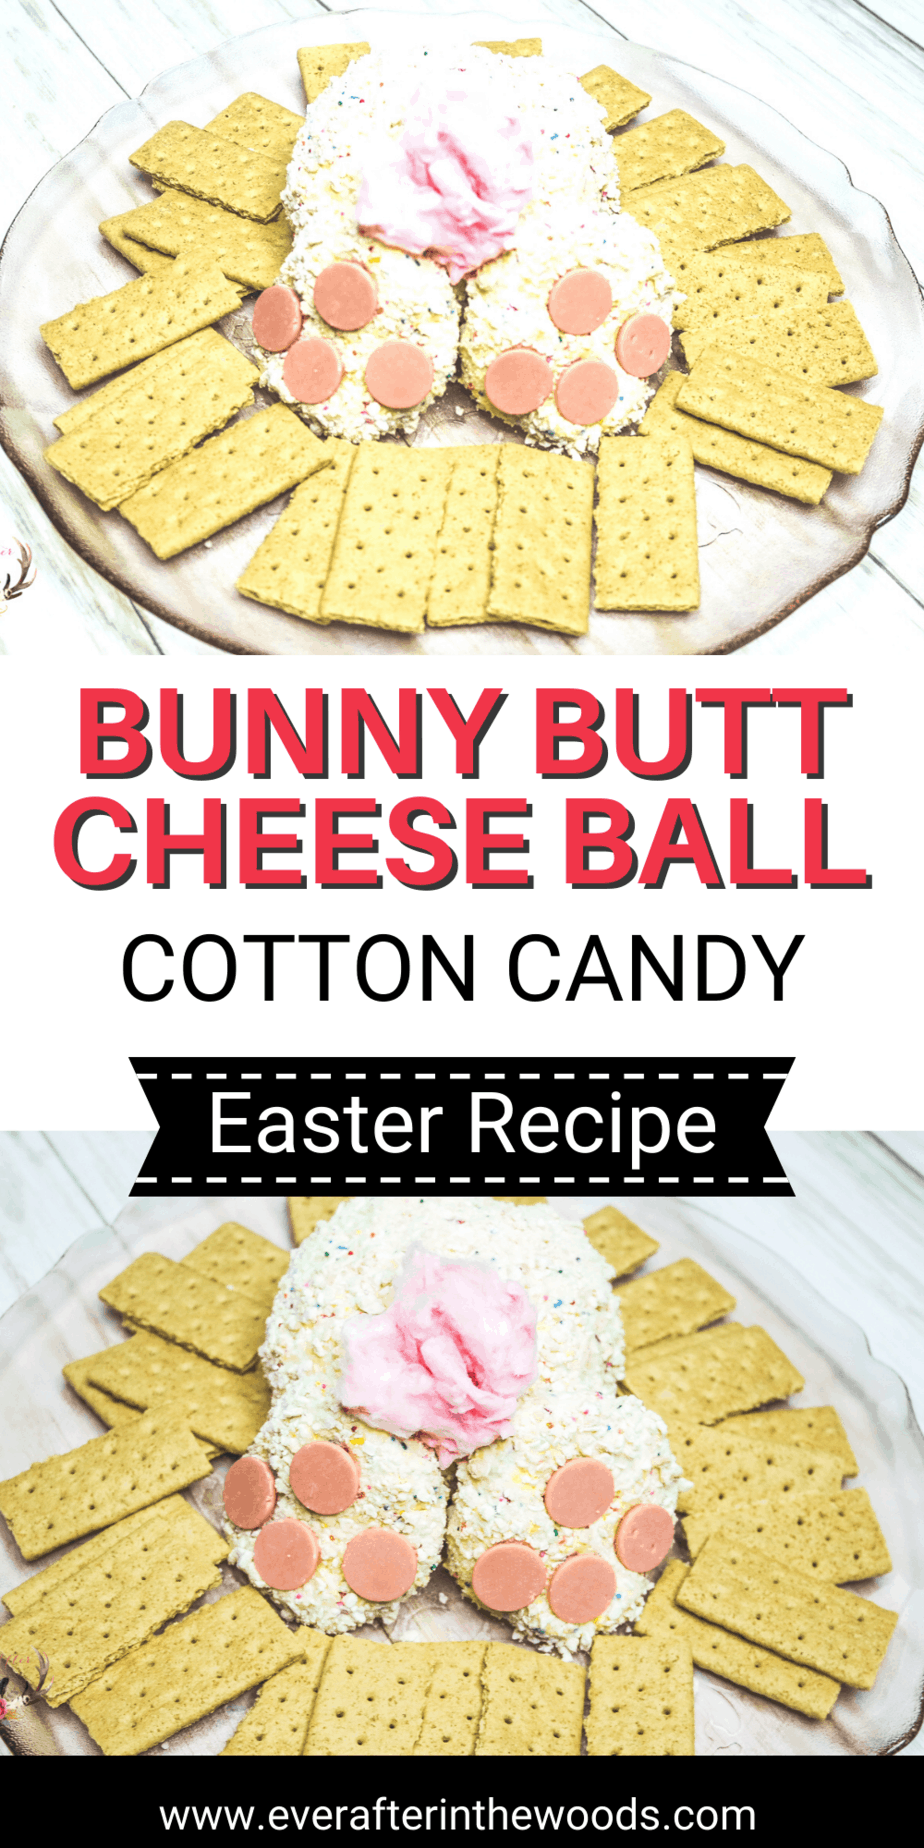 Bunny Butt Cheese Ball with Cotton Candy